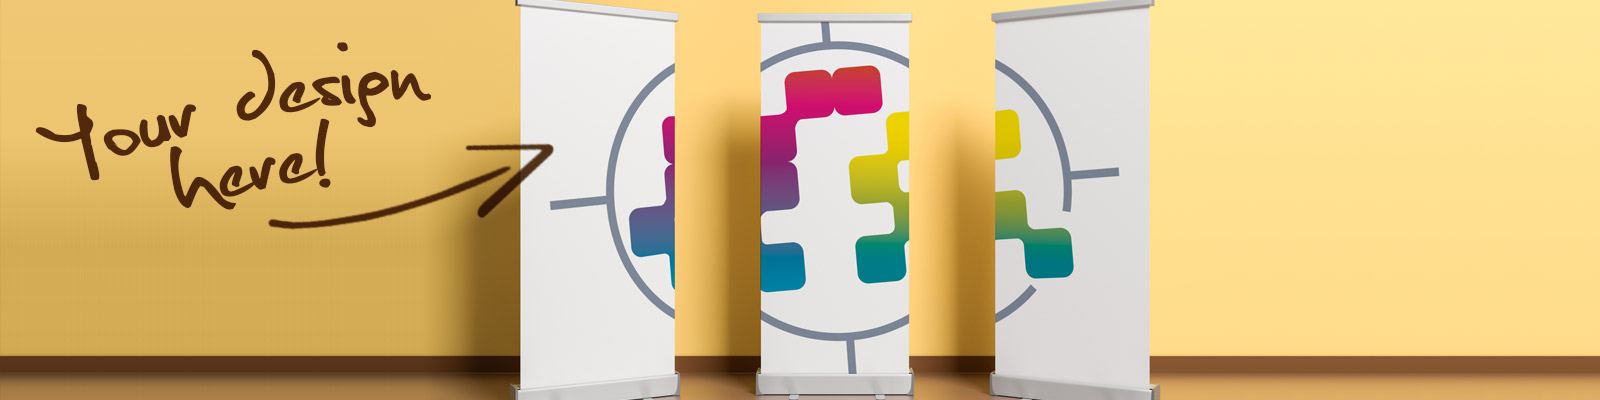 W.A. Fisher Banners & Displays